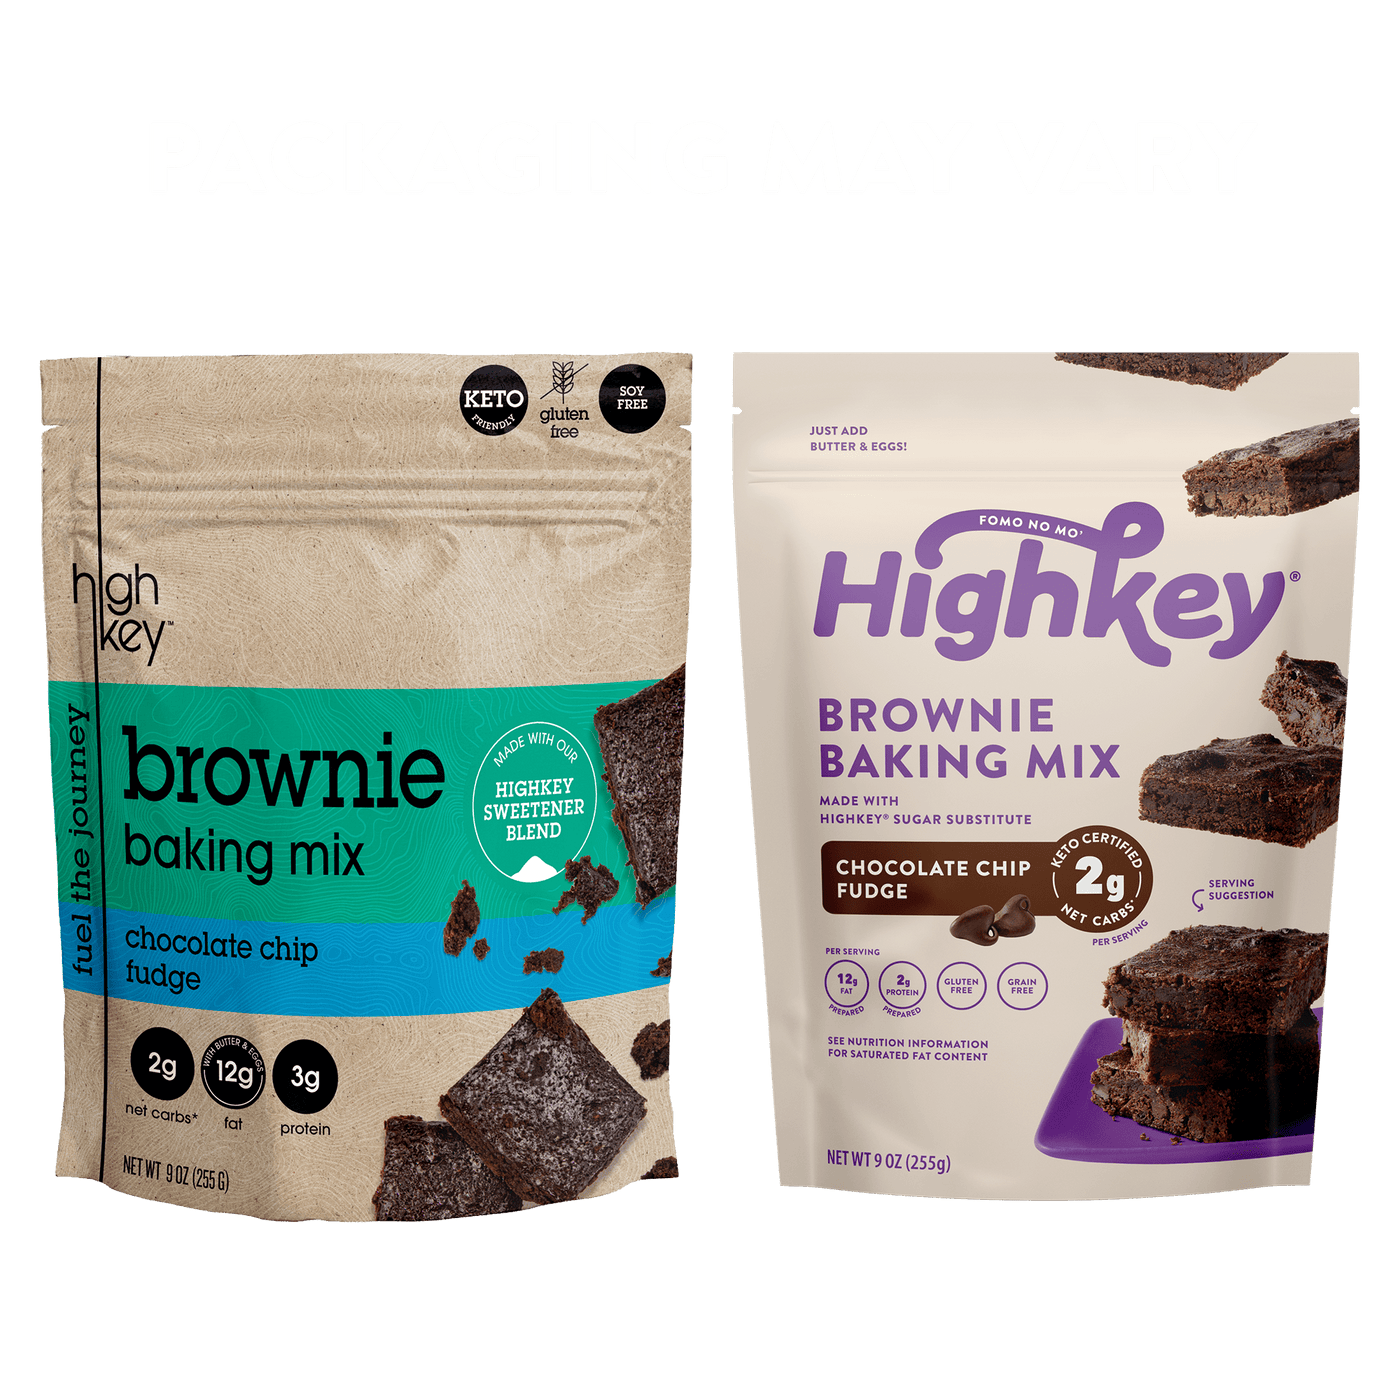 Highkey Low Net Carb Baking Mix Brownie Baking Mix | 4 Pack Flavor